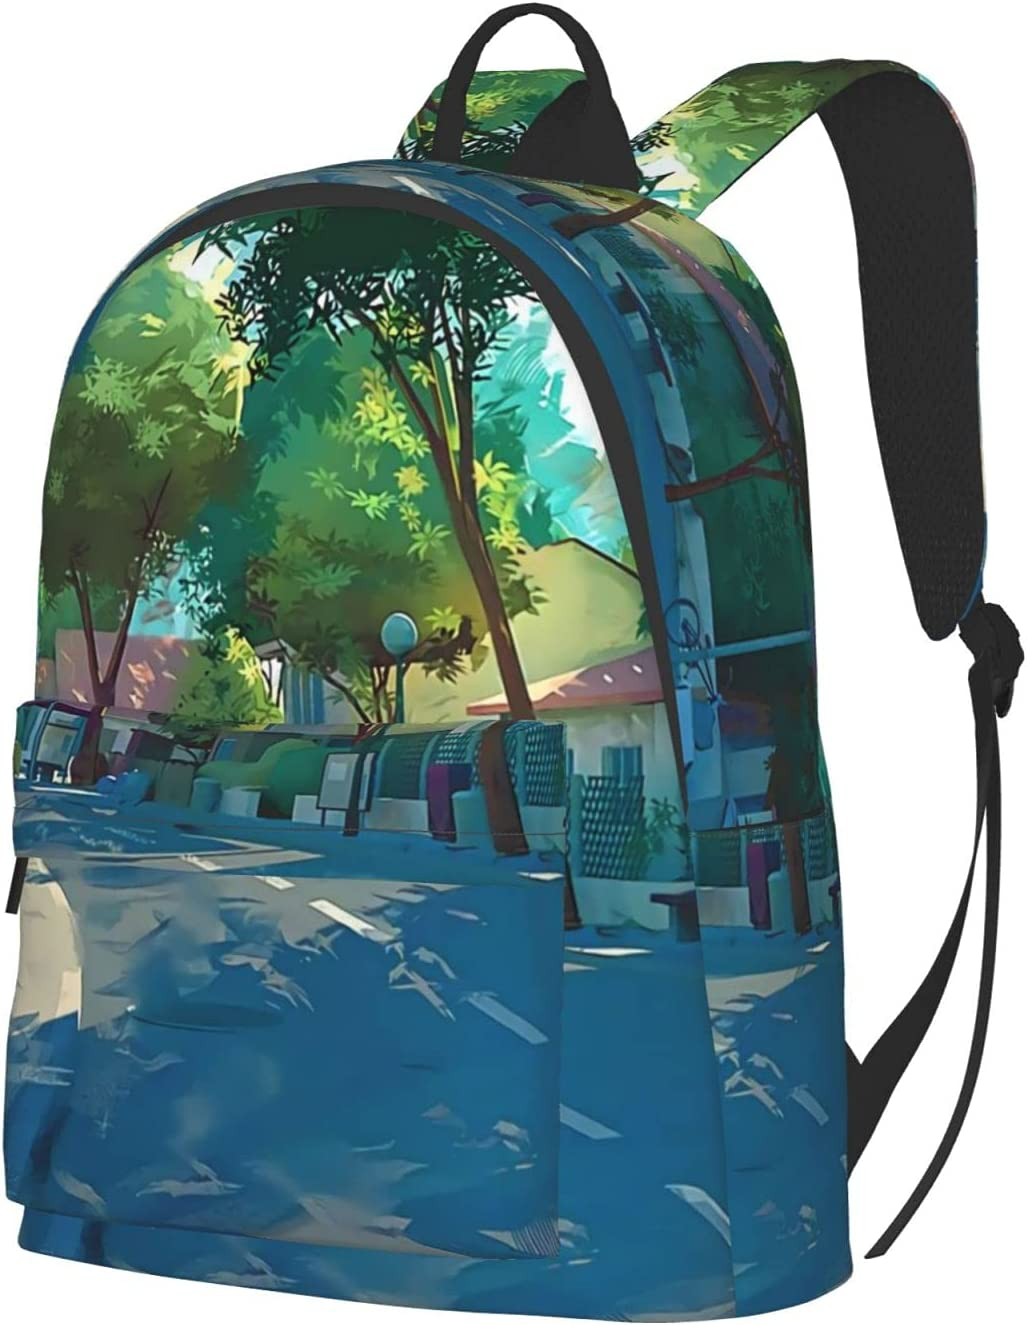 Large New Free Shipping Capacity Backpack Water-Resistant National products Sho Small Purse